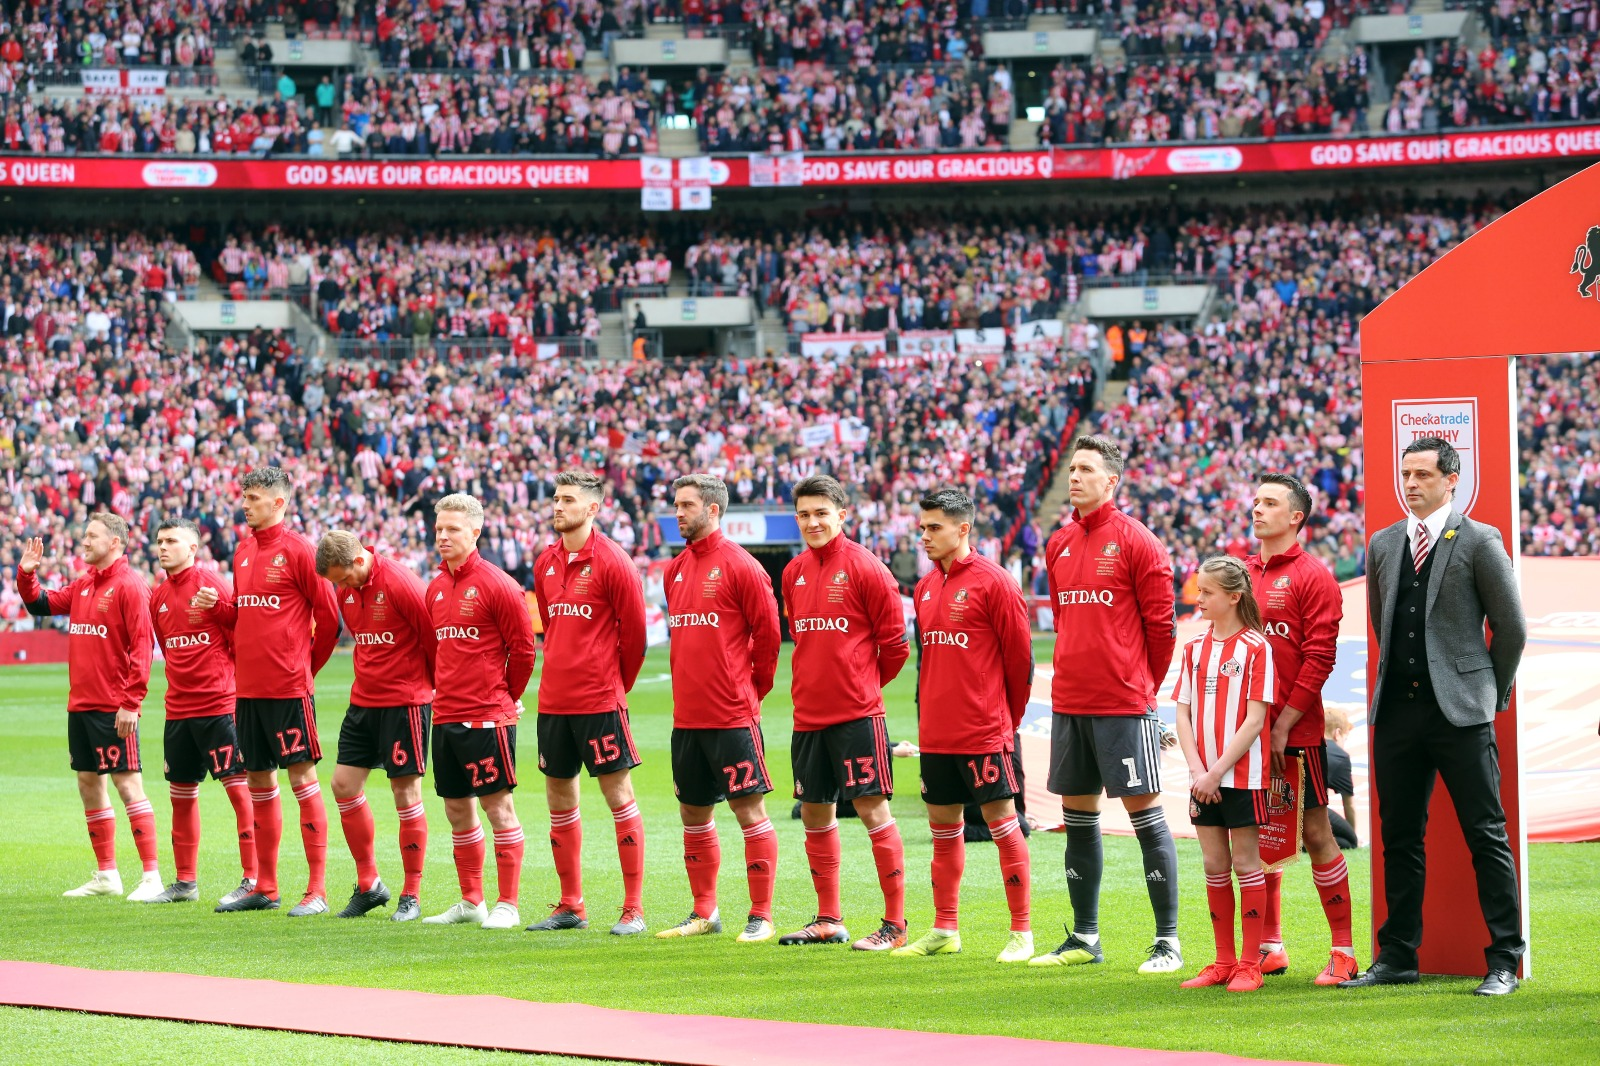 Match Preview: After sixty games this is it - can Sunderland gain promotion to the Championship?